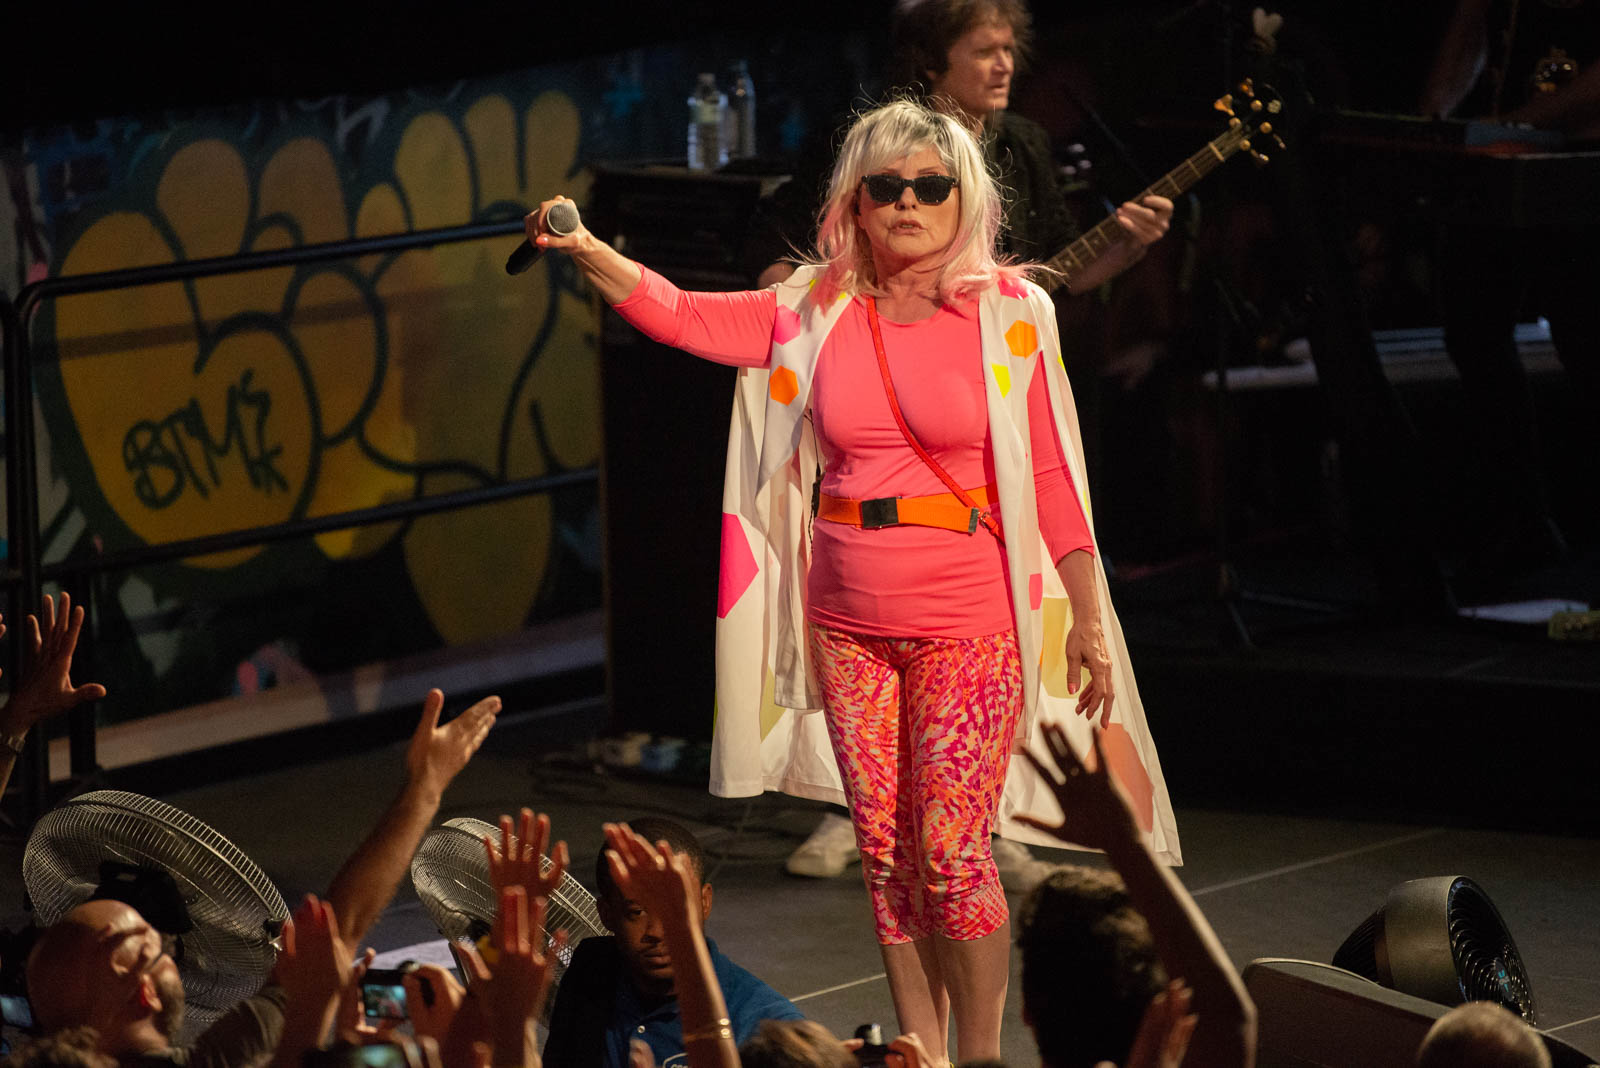 Blondie at House of Vans in Brooklyn, NY on Friday, July 20, 2018.